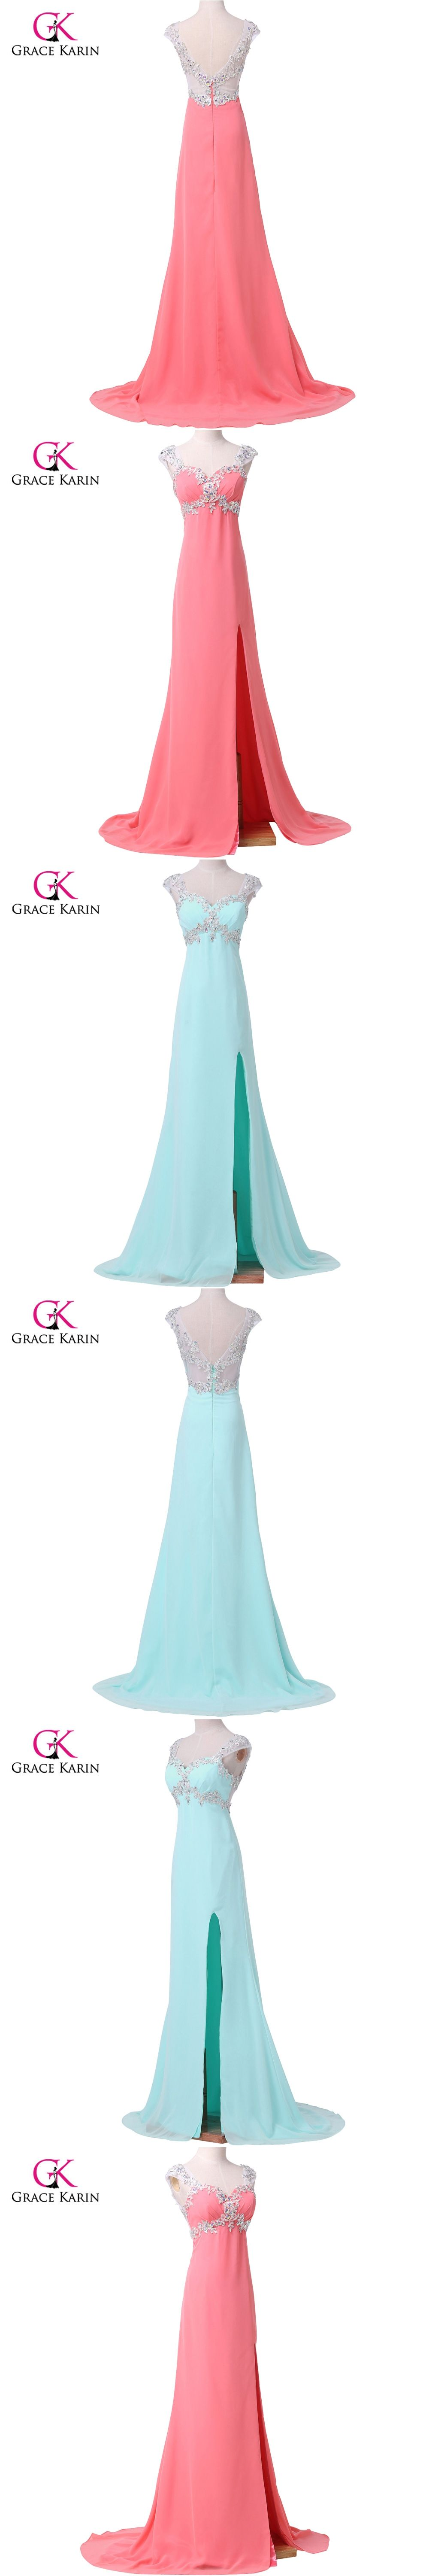 Long evening dresses grace karin new arrival ruched coral light